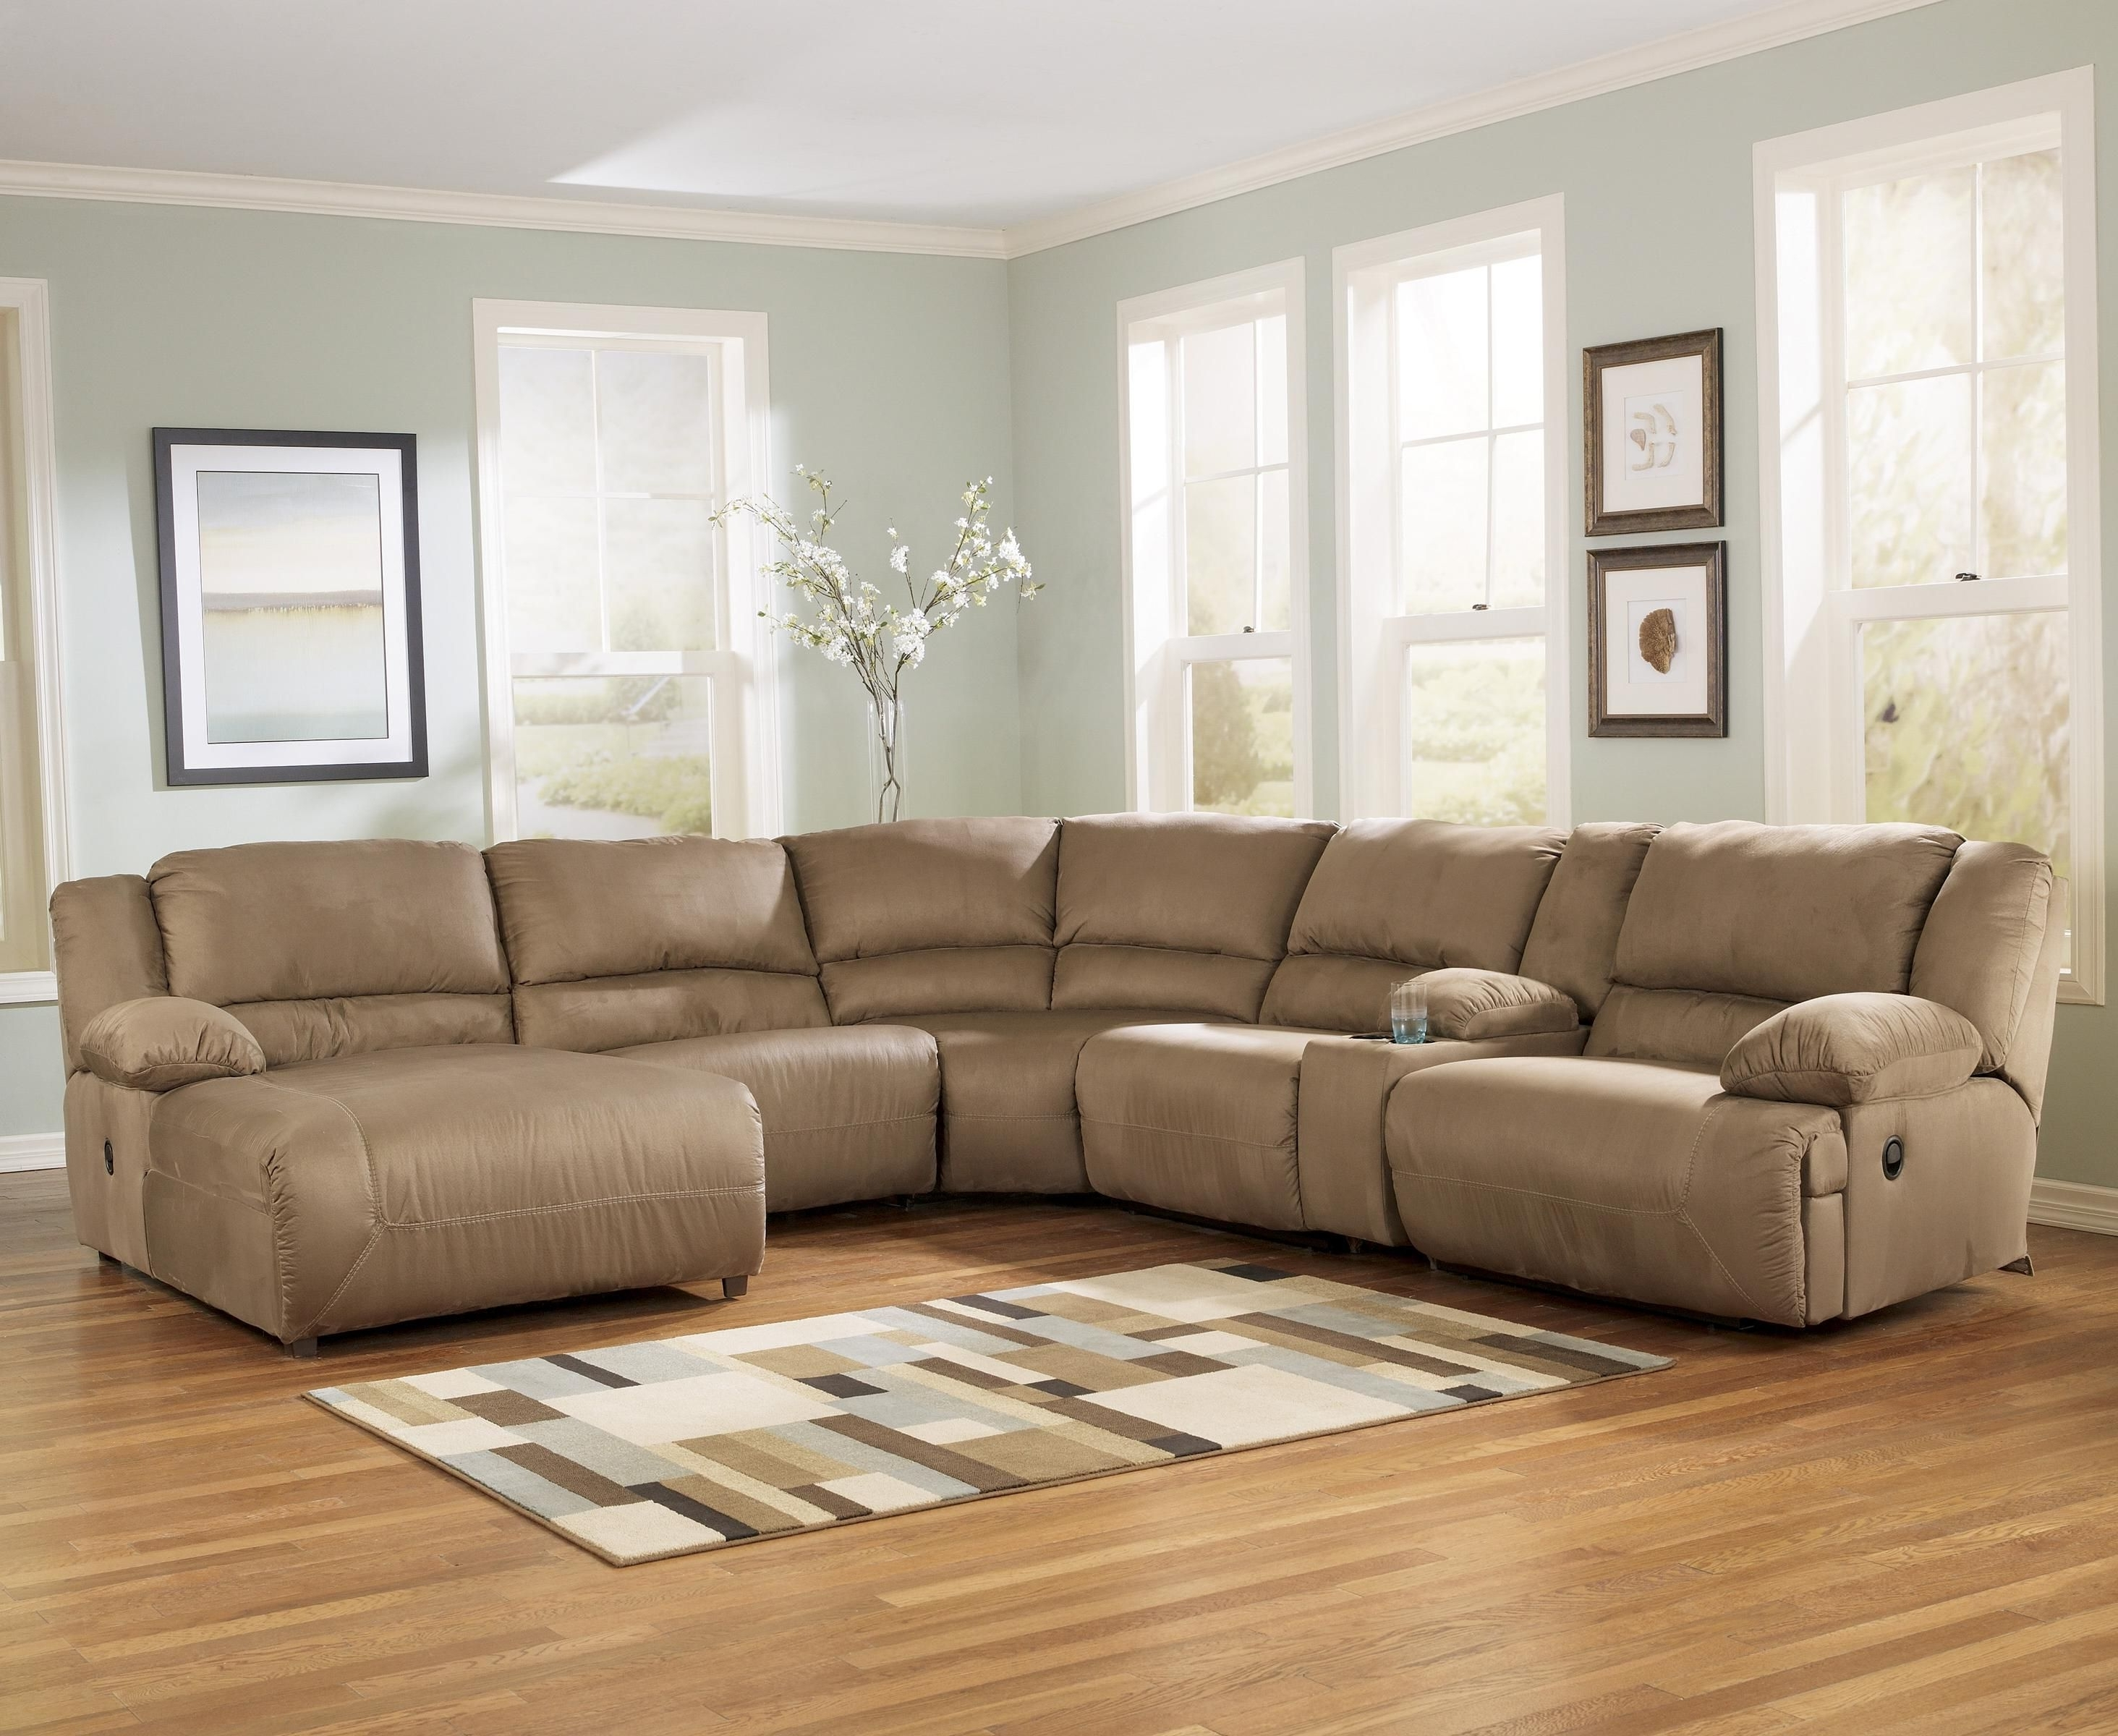 Hogan – Mocha 6 Piece Motion Sectional With Right Chaise And For Most Popular Harrisburg Pa Sectional Sofas (View 10 of 15)